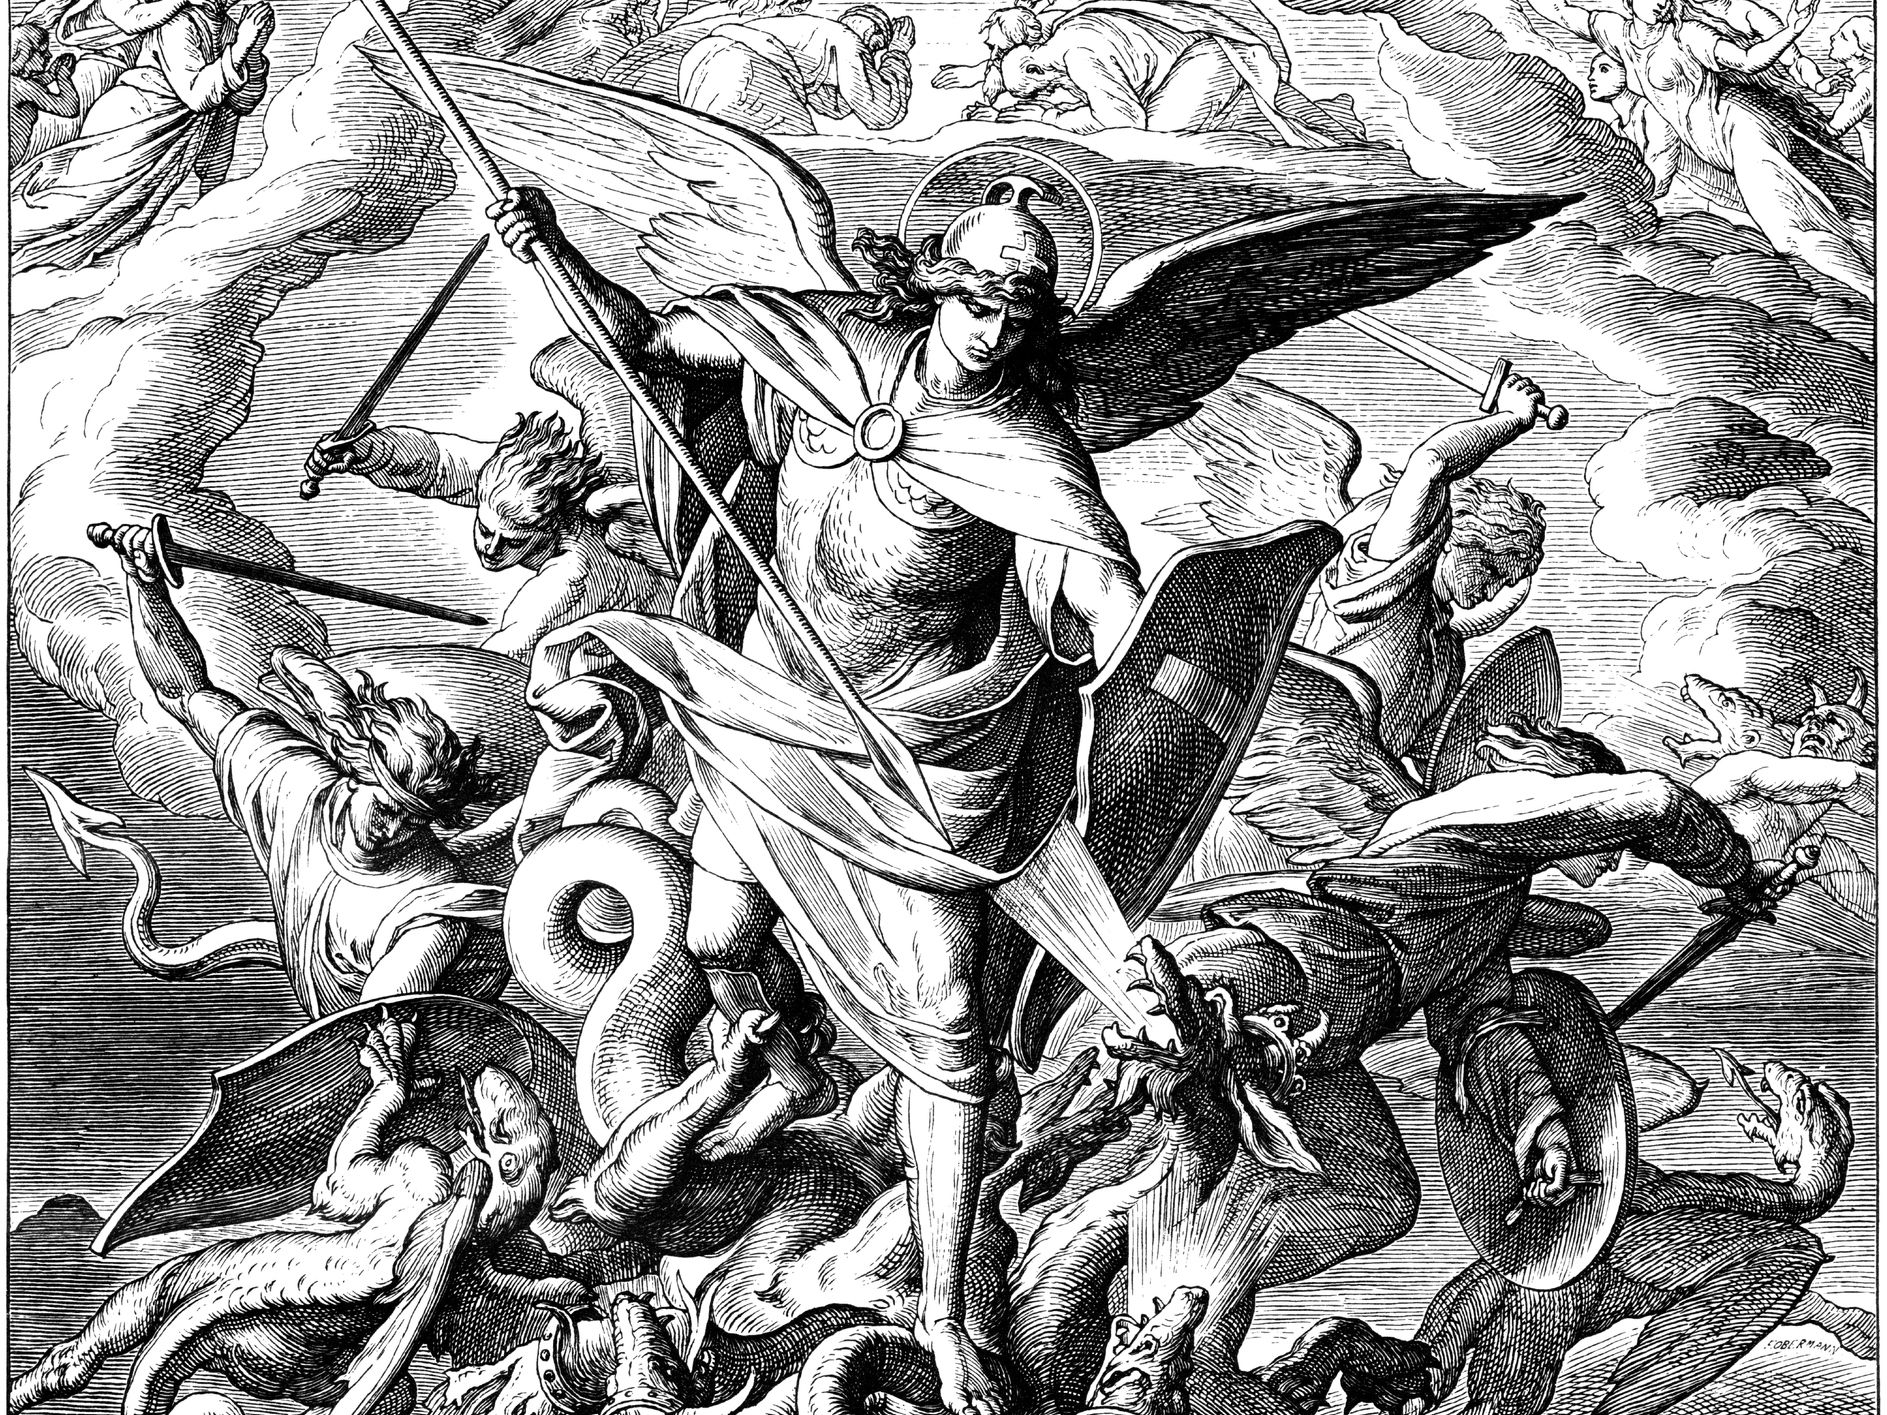 Archangel Michael - Profile of the Angel and Saint